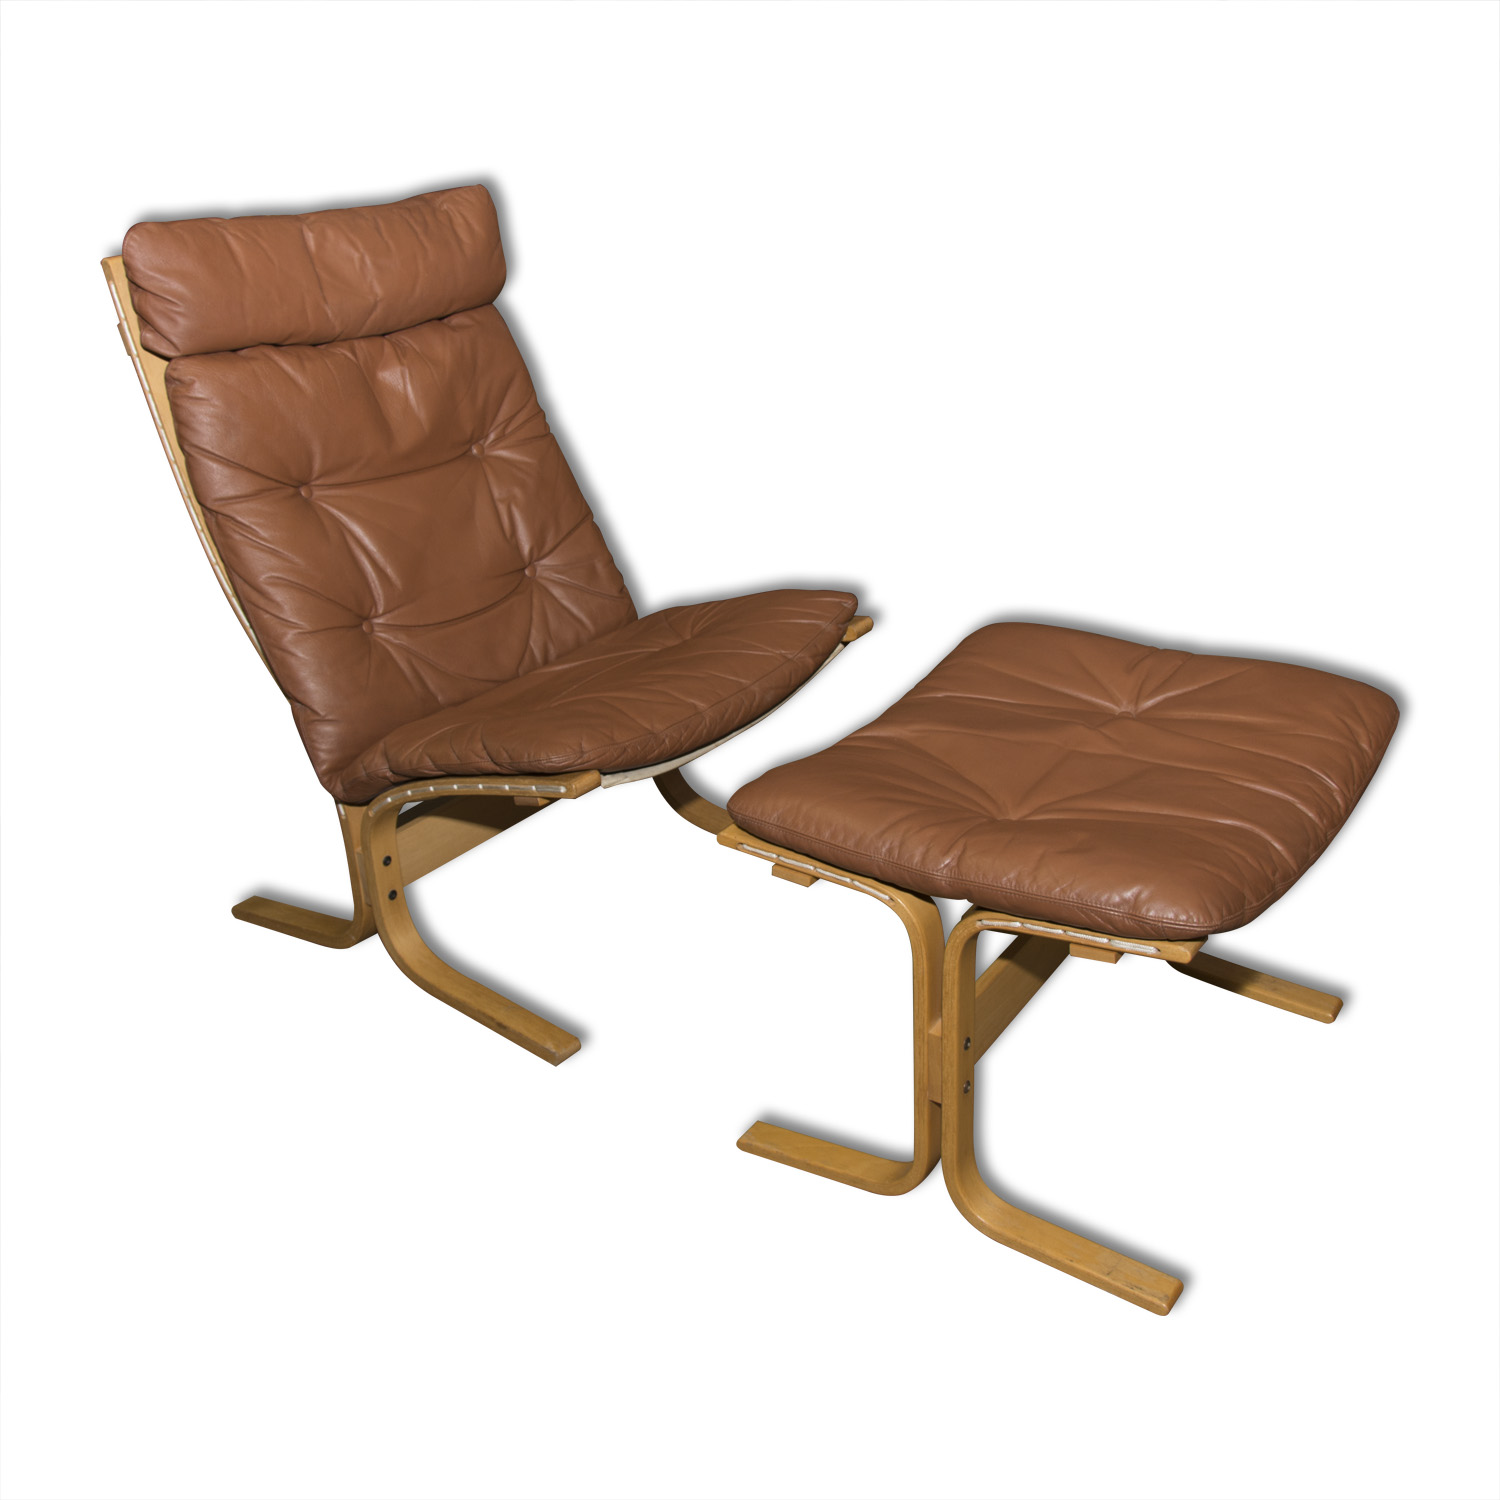 Astounding Mid Century Siesta Lounge Leather Chair And Ottoman By Gmtry Best Dining Table And Chair Ideas Images Gmtryco